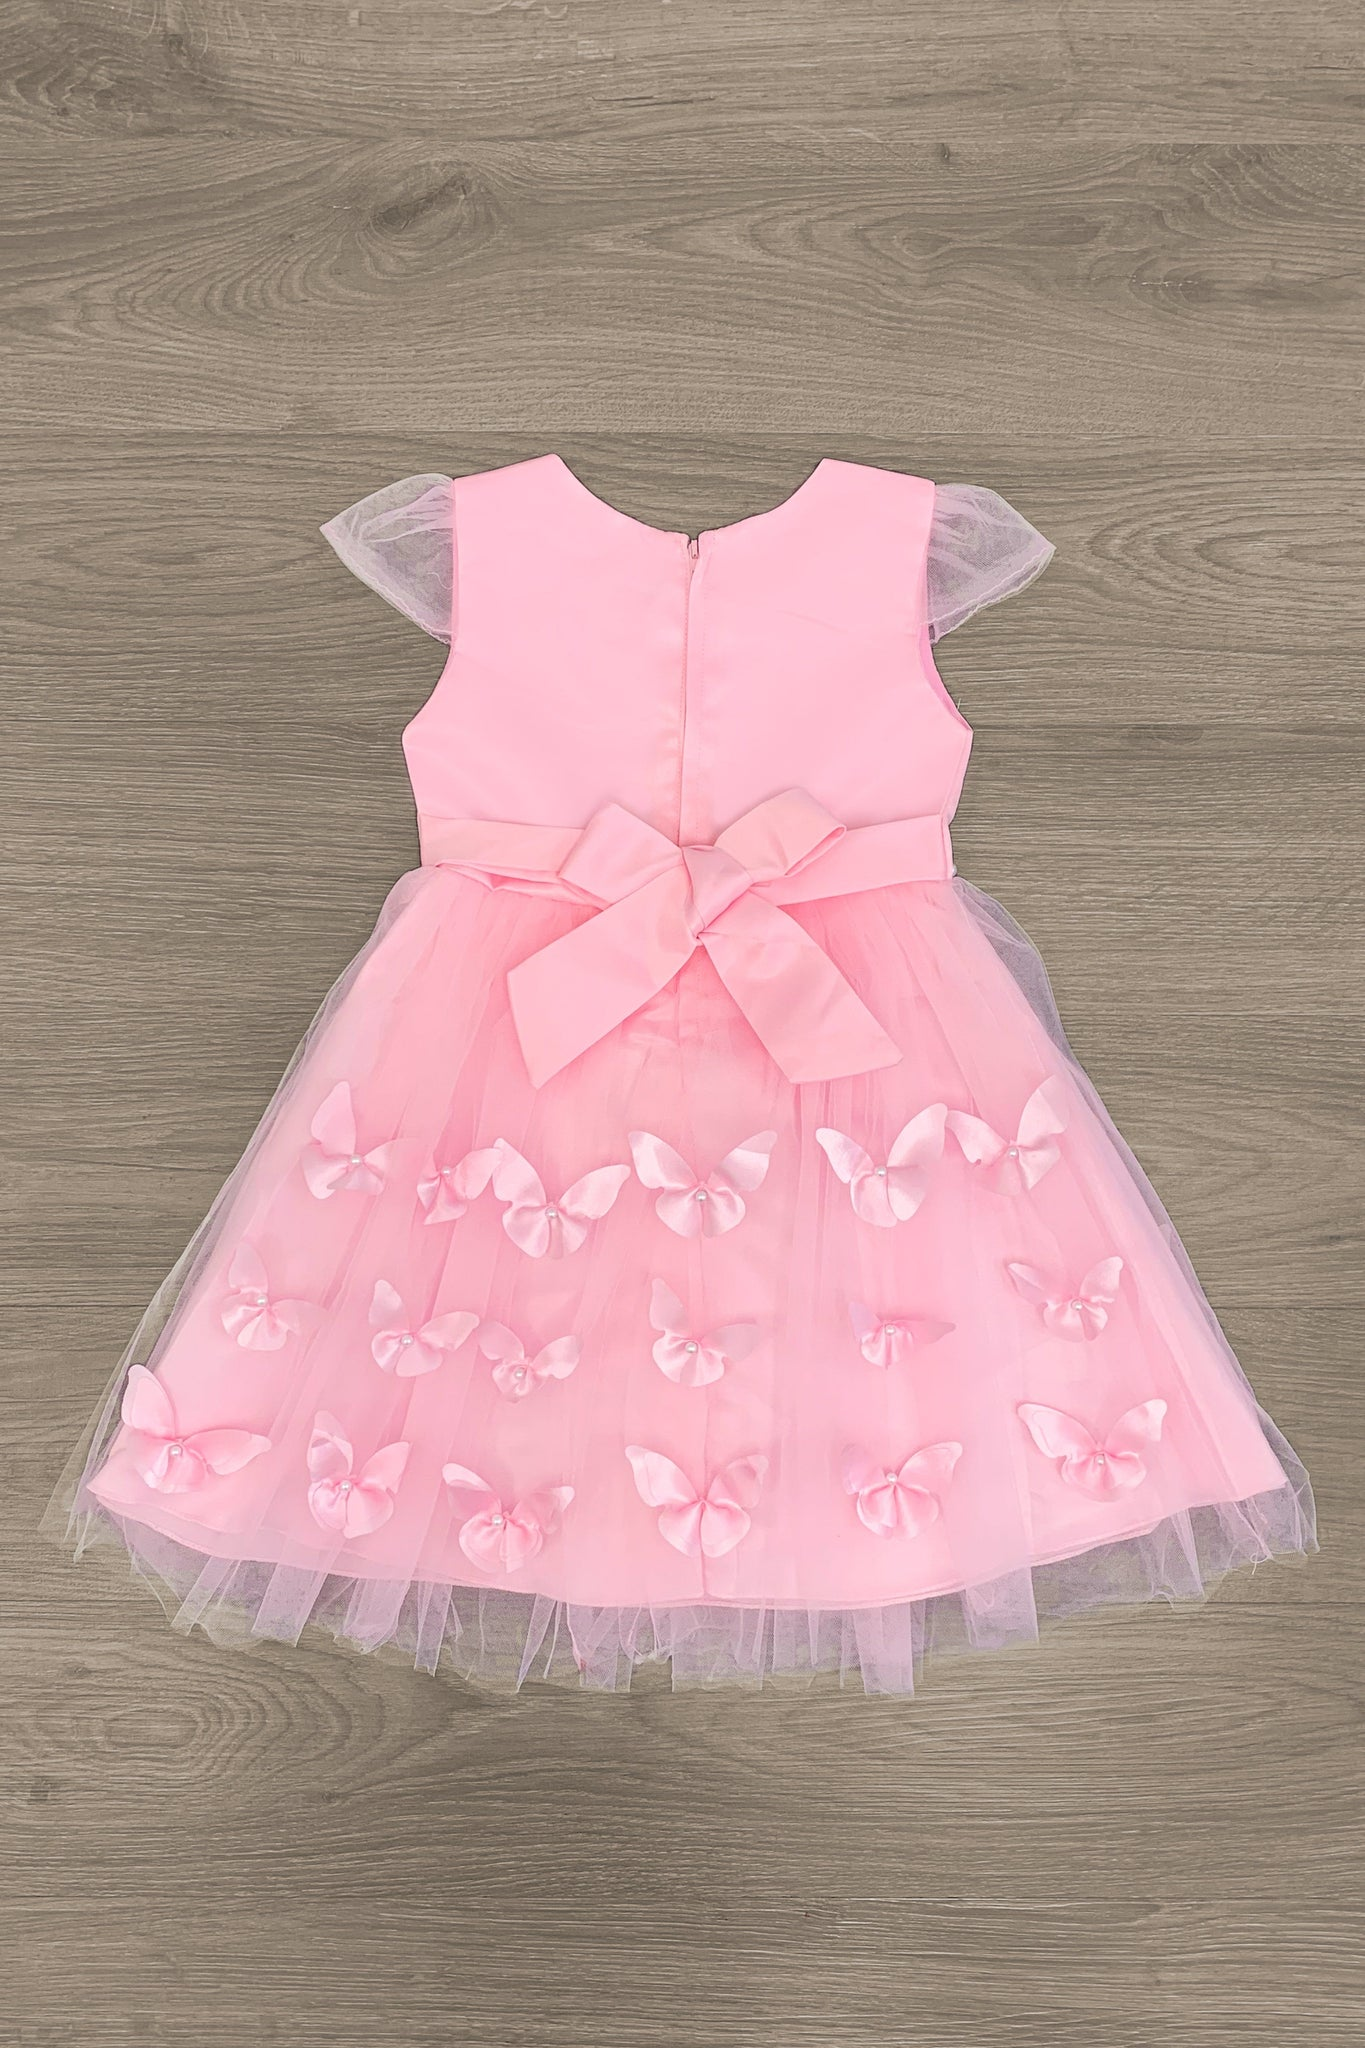 DELUXE - Butterflies & Pearls Tulle Dress - Light Pink - Sparkle in Pink